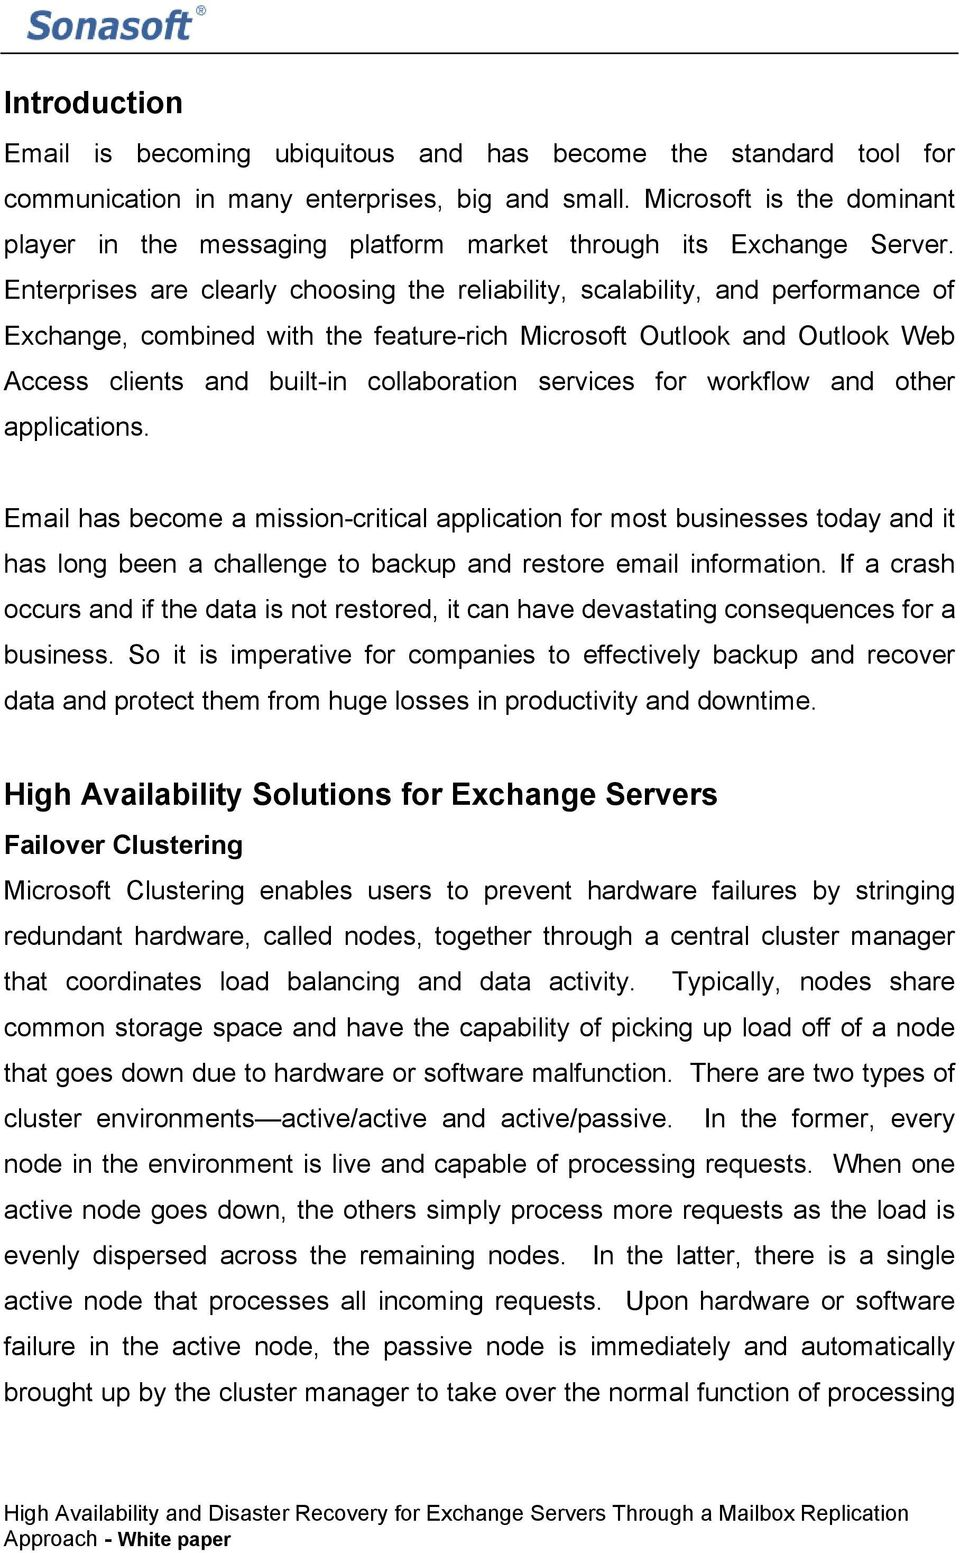 Enterprises are clearly choosing the reliability, scalability, and performance of Exchange, combined with the feature-rich Microsoft Outlook and Outlook Web Access clients and built-in collaboration